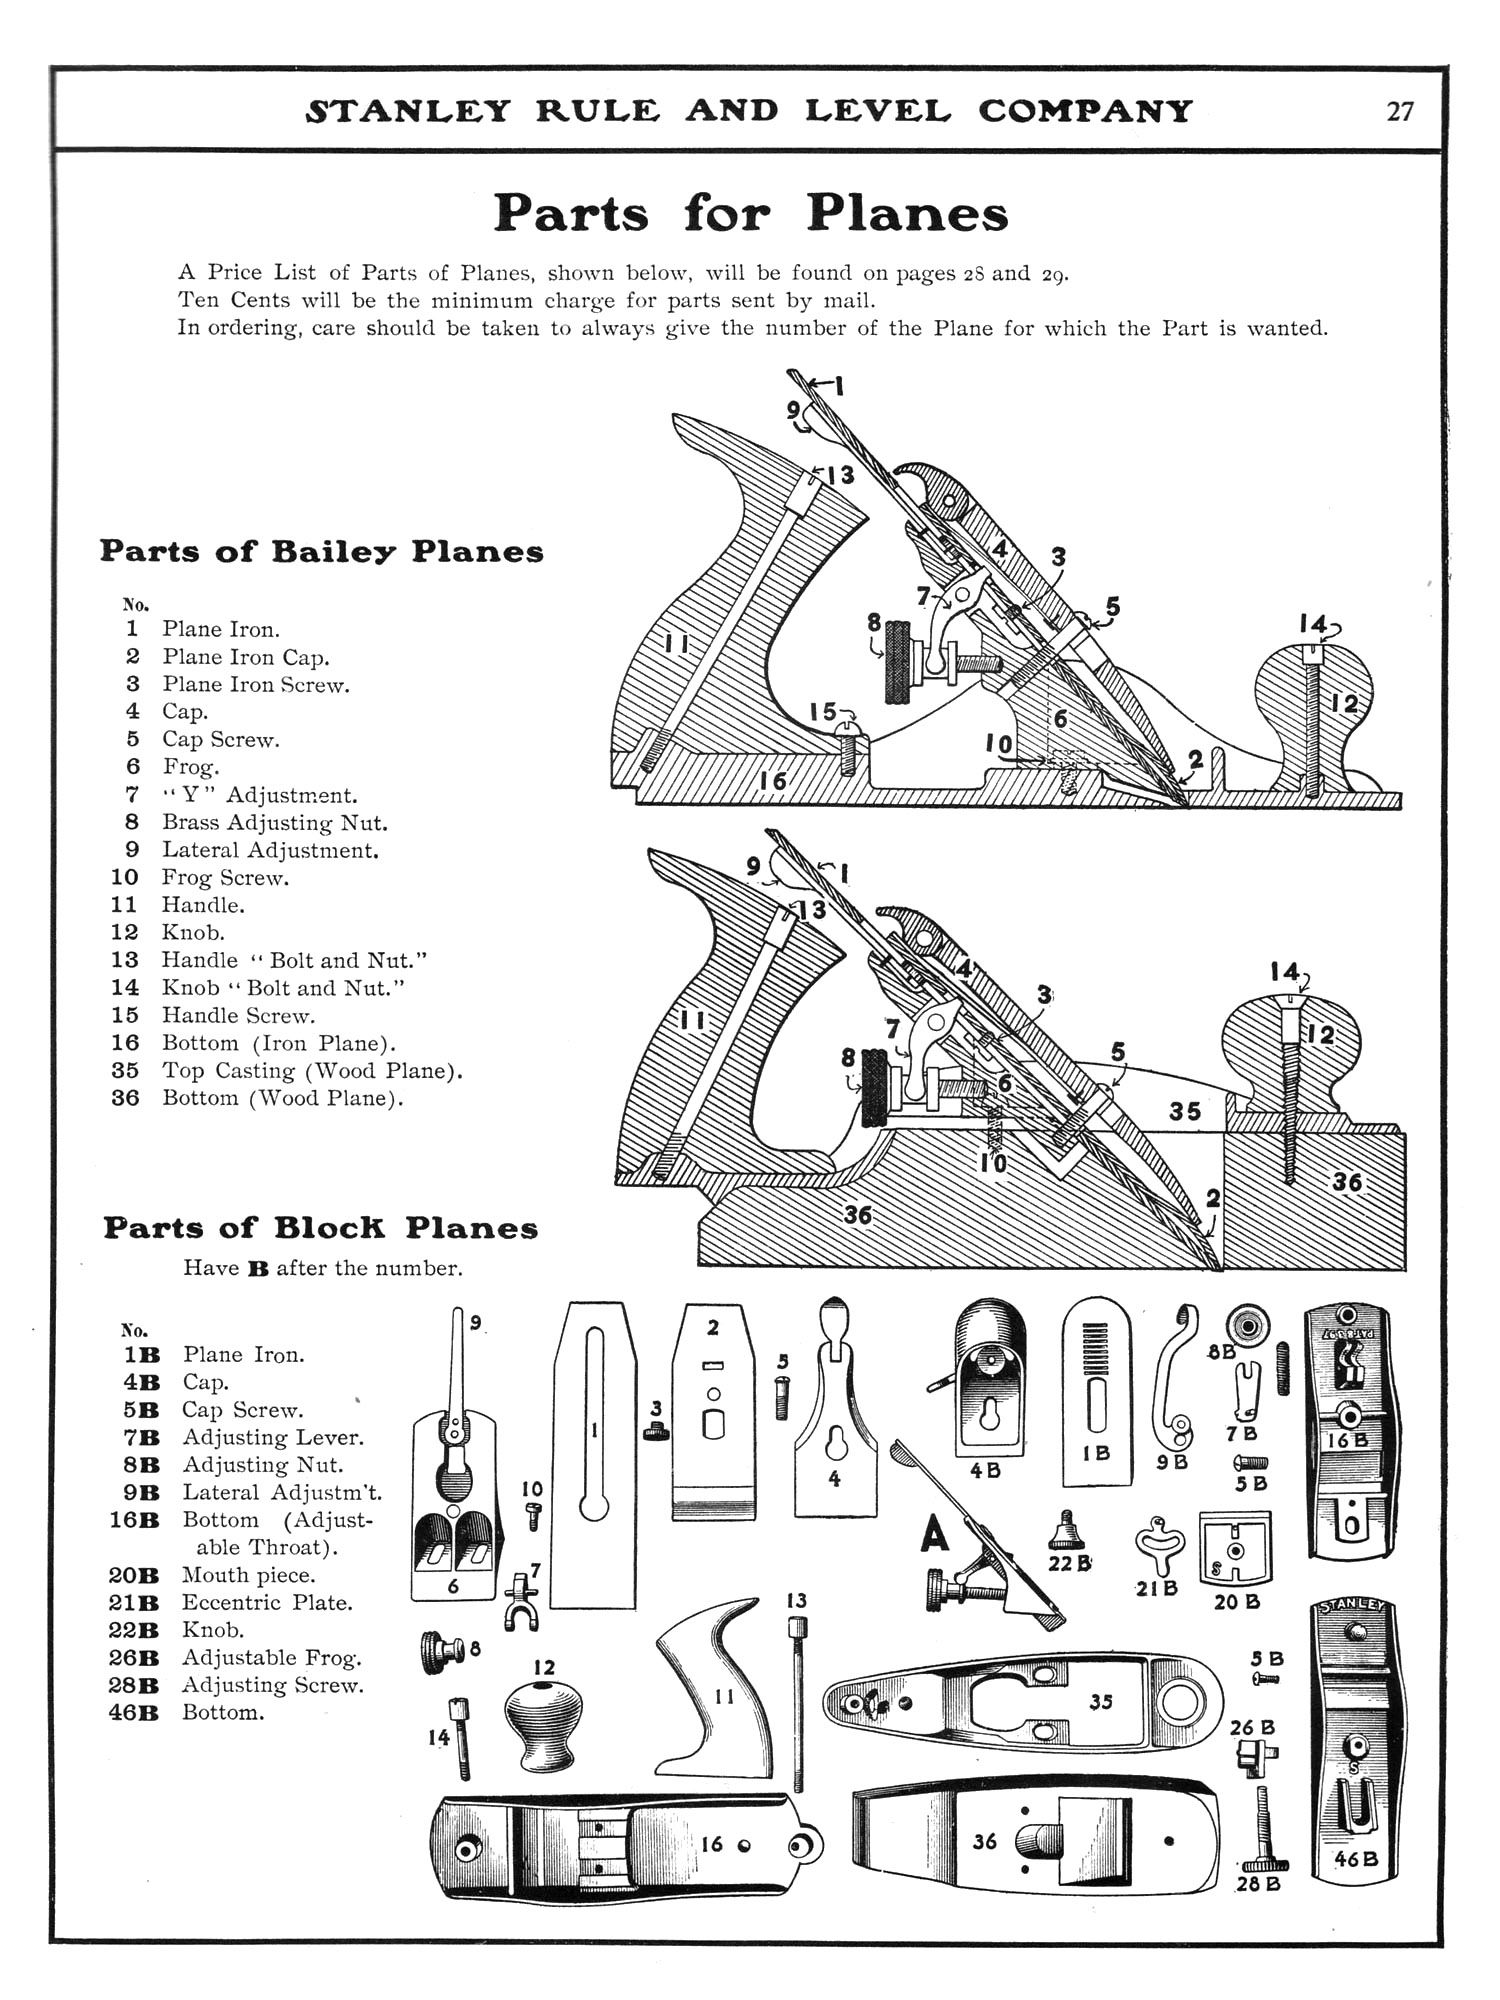 Stanley Parts Of Plane